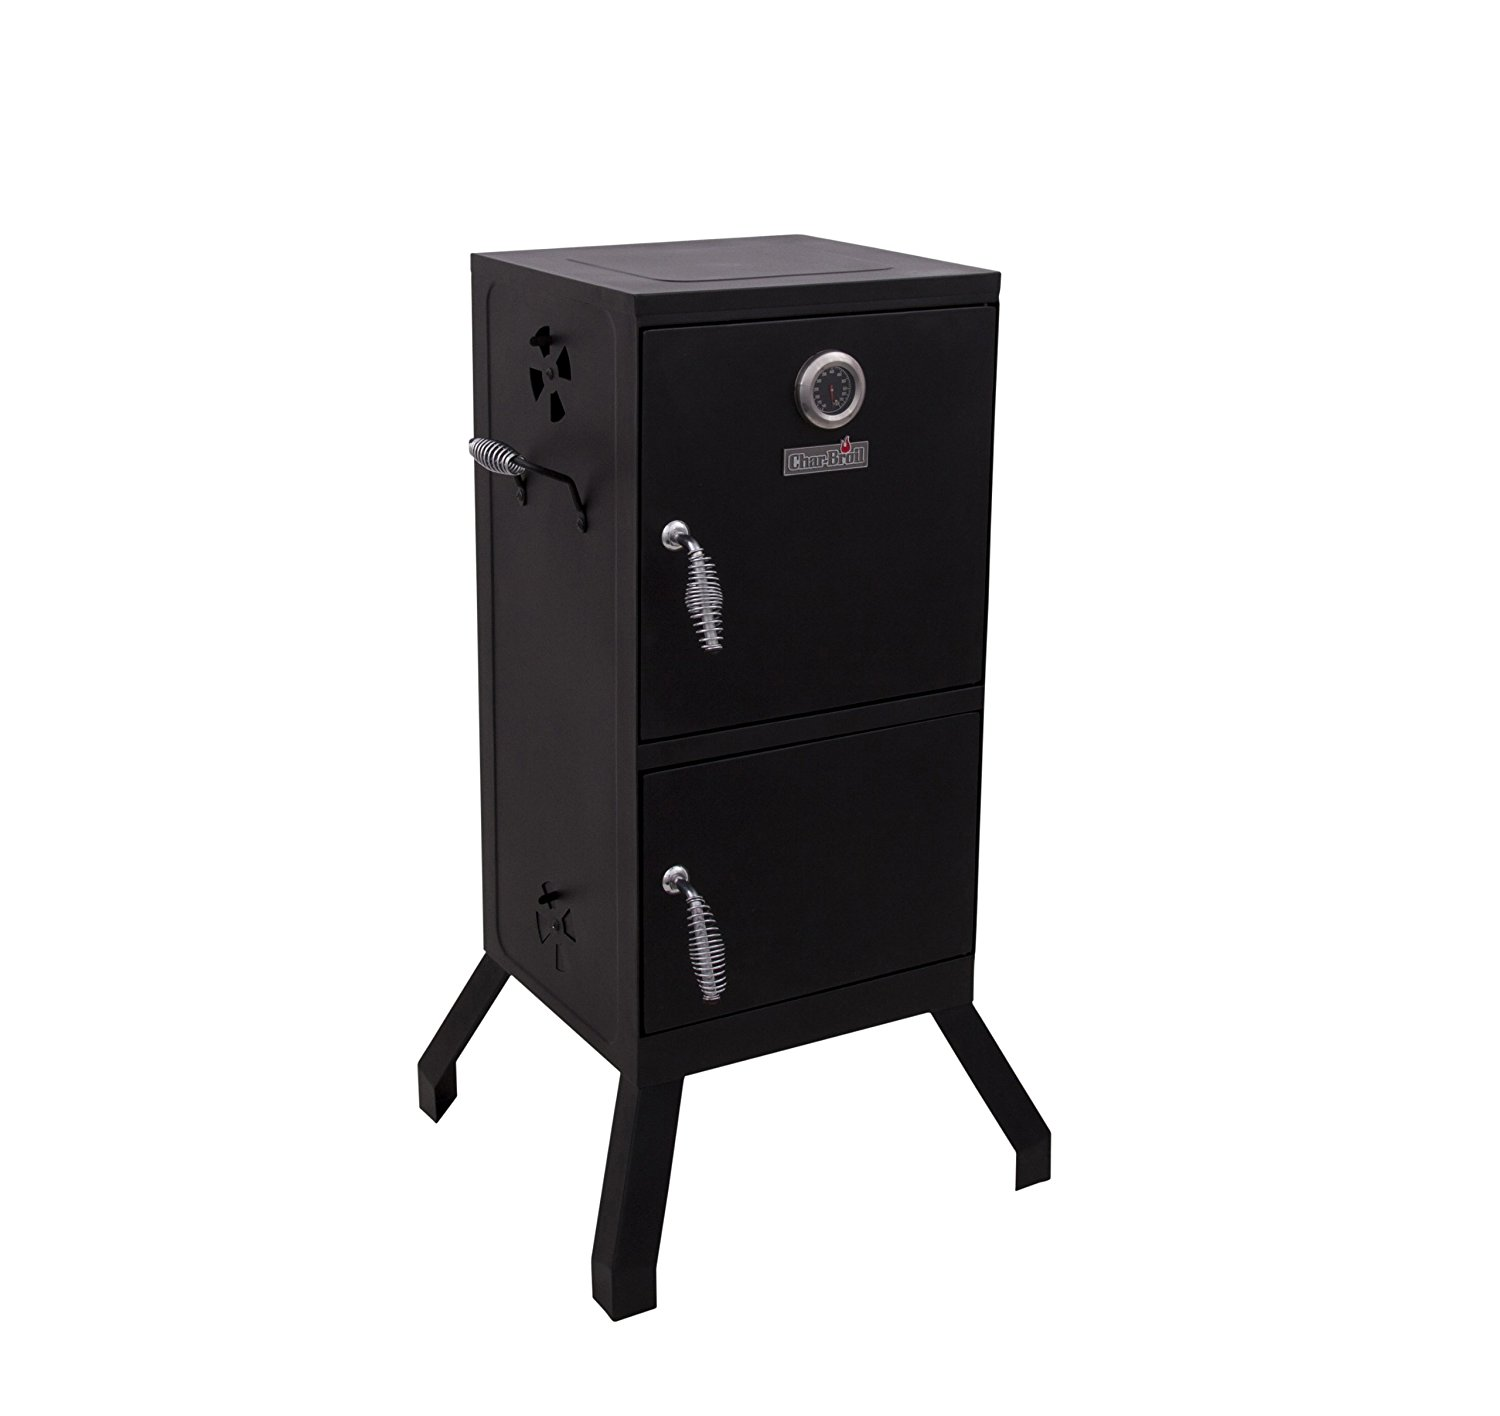 Char-Broil Vertical Charcoal Smoker